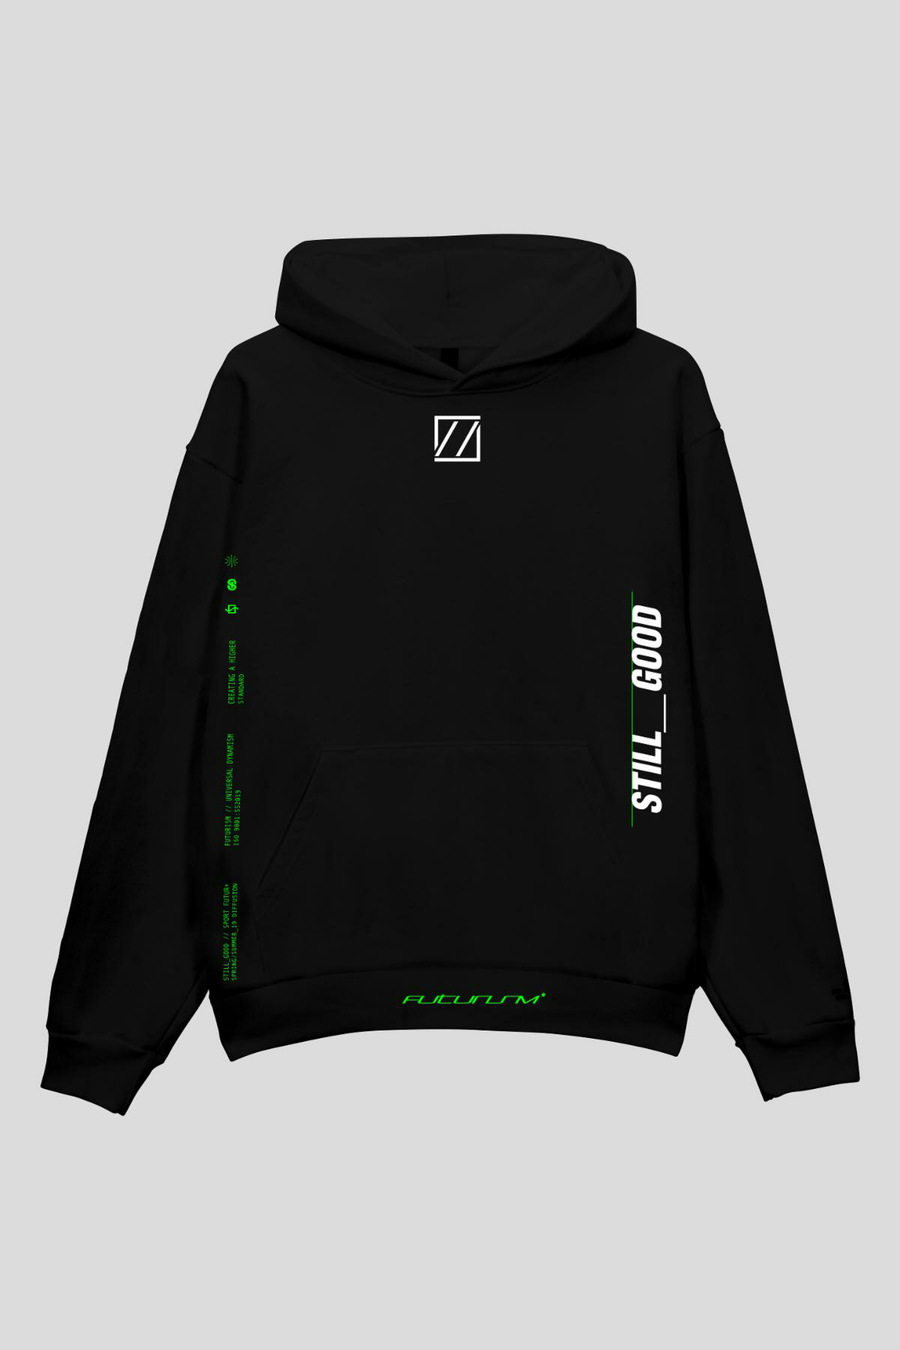 Movement Hoodie Black/White / XS | Still Good